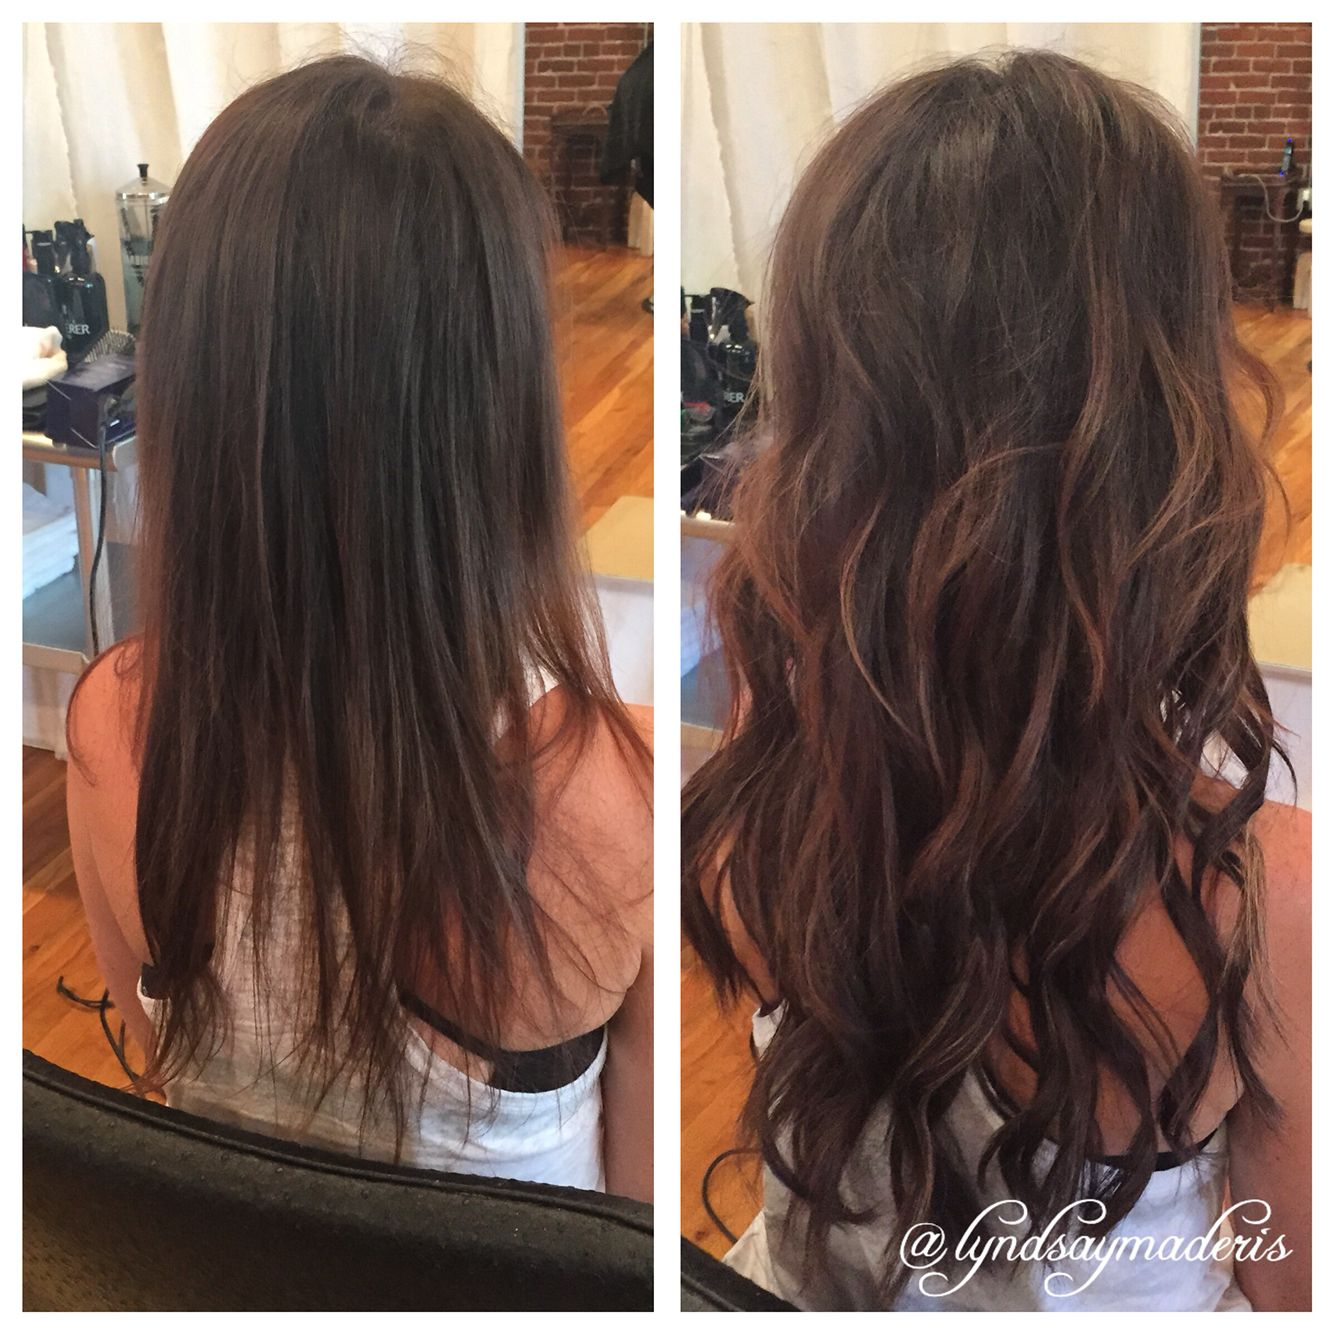 Hide thin hair with great lengths hair extensions by lyndsay hide thin hair with great lengths hair extensions by lyndsay maderis greatlengthsusa pmusecretfo Image collections